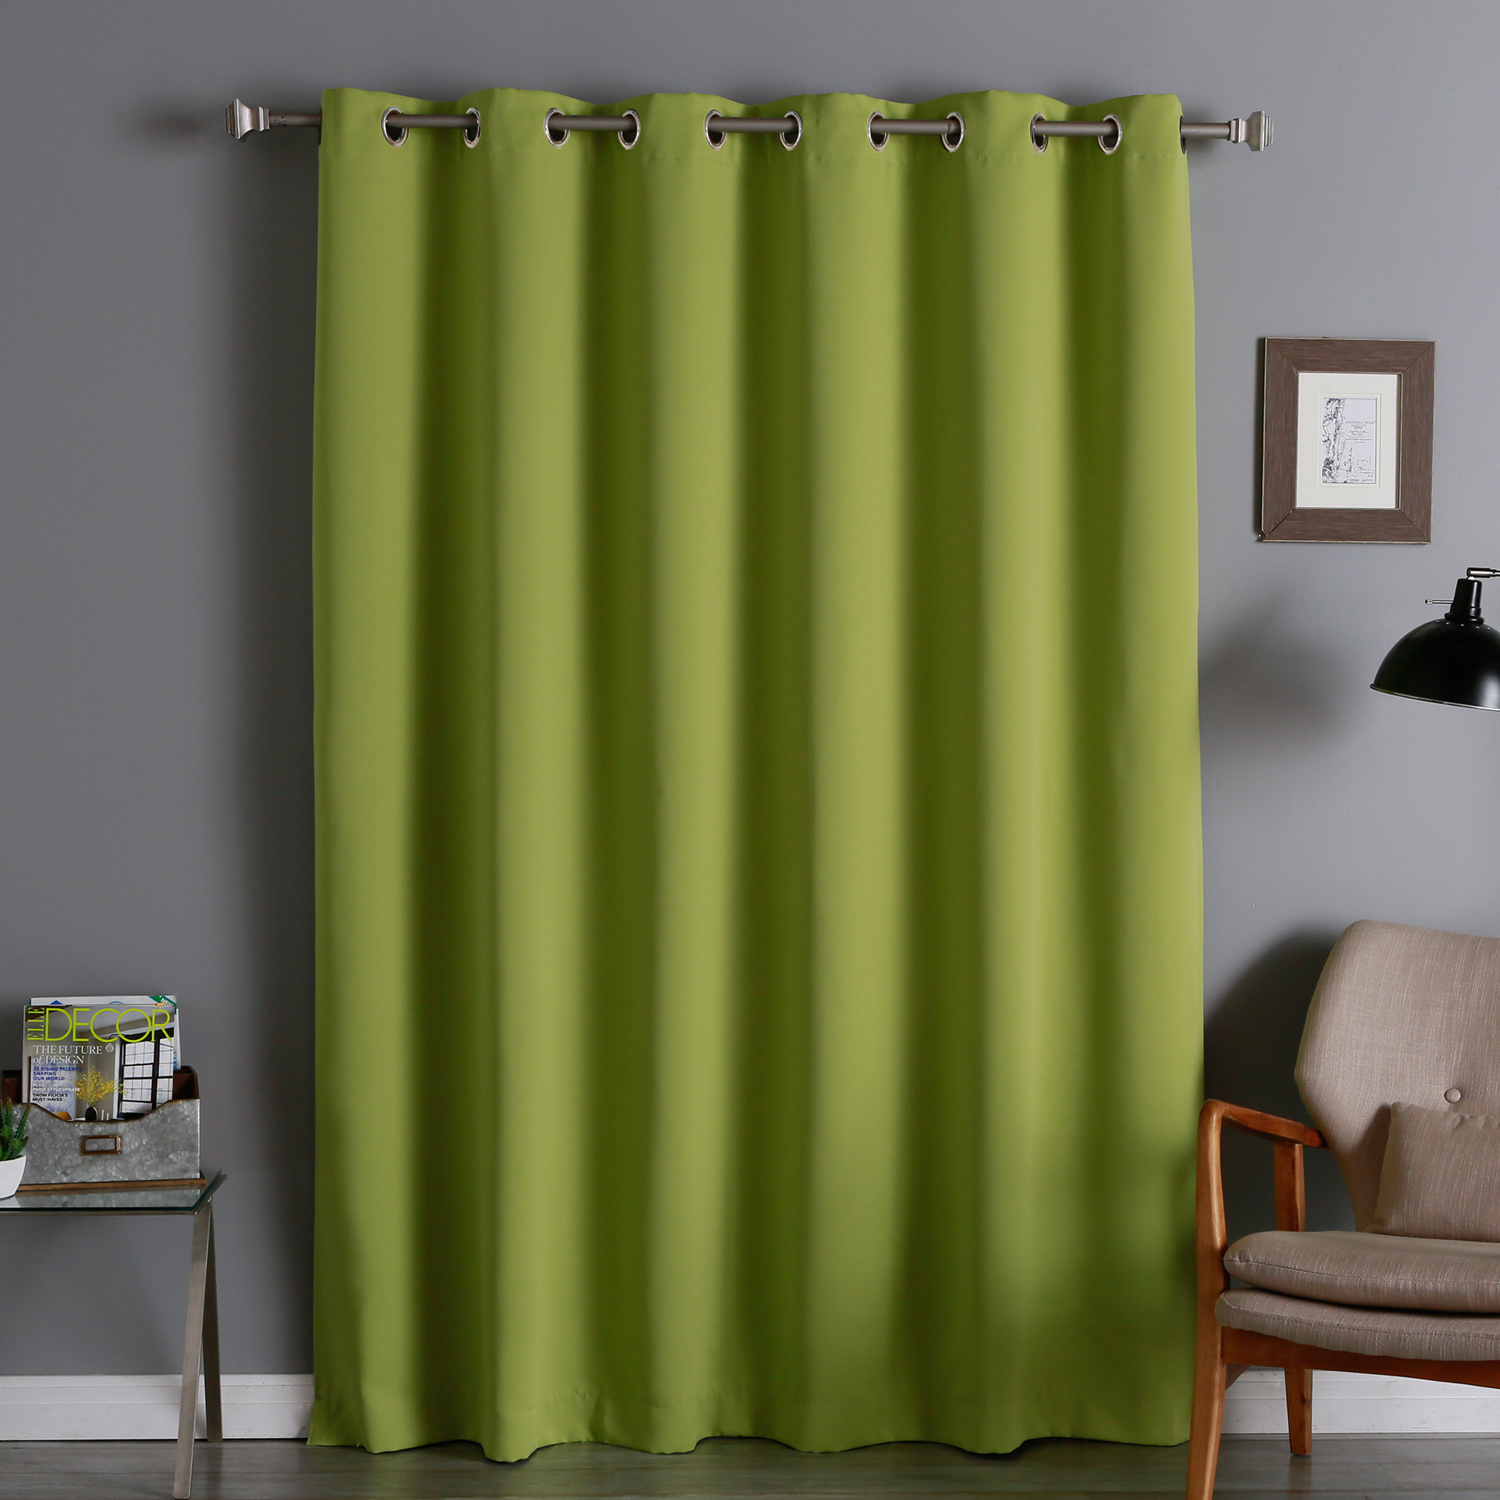 102 Inch Curtains Extra Wide Blackout Curtains Homesfeed